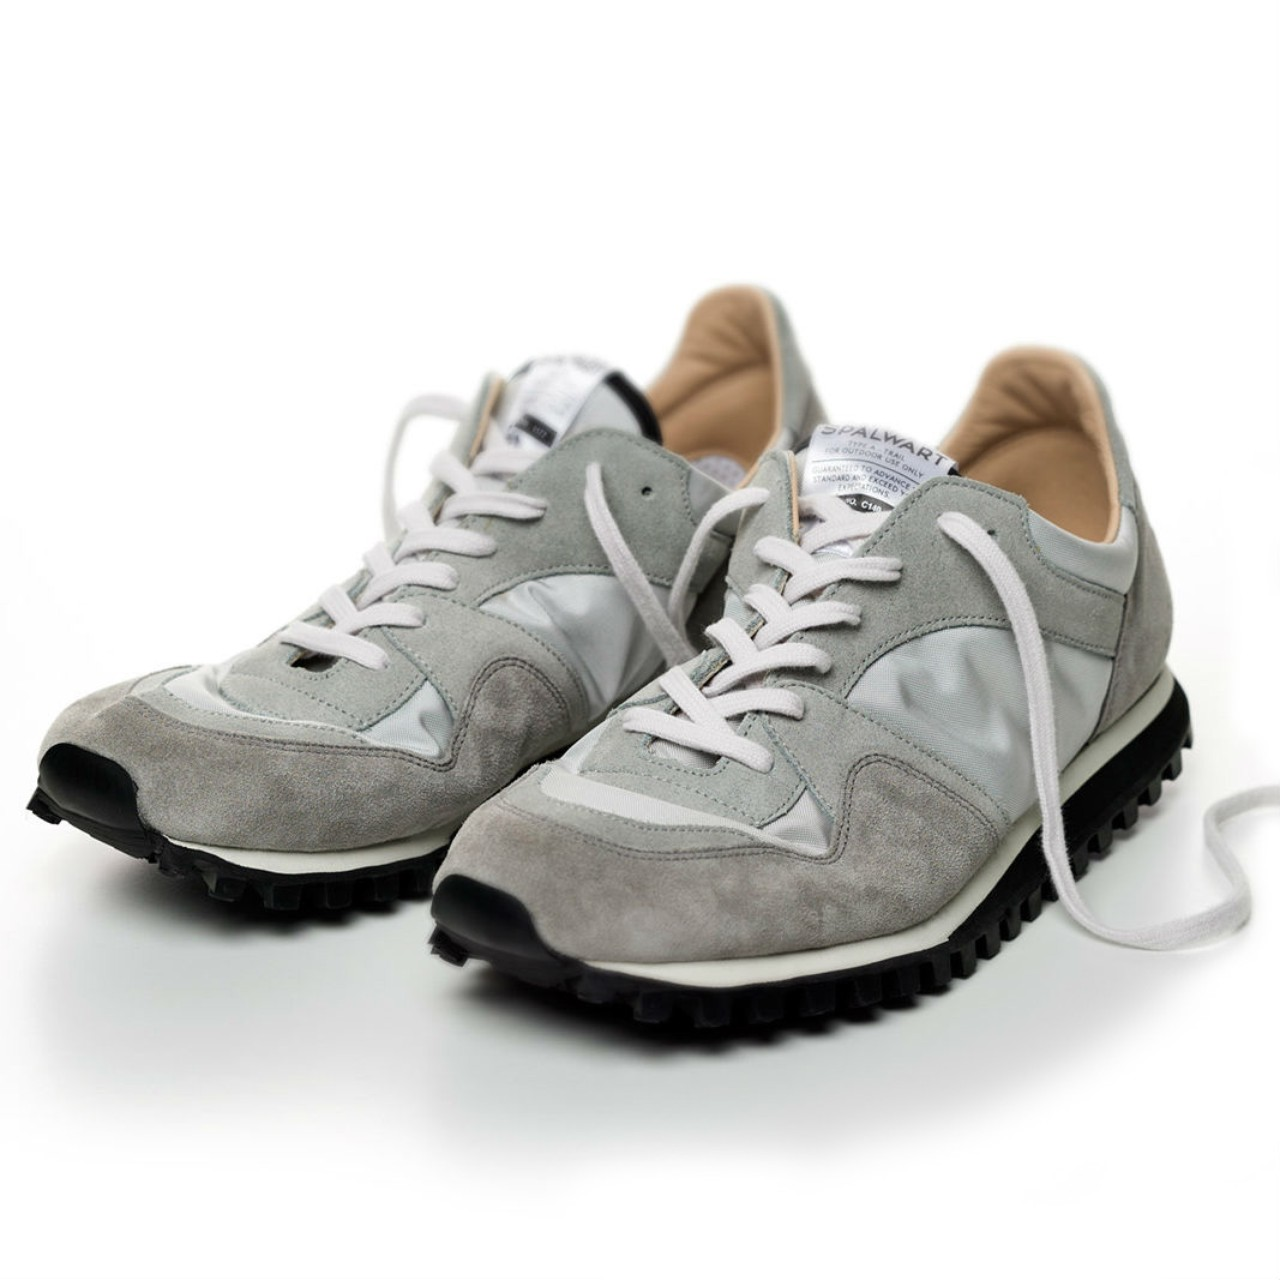 Spalwart Marathon Trail Low Trainers for Running in Cement